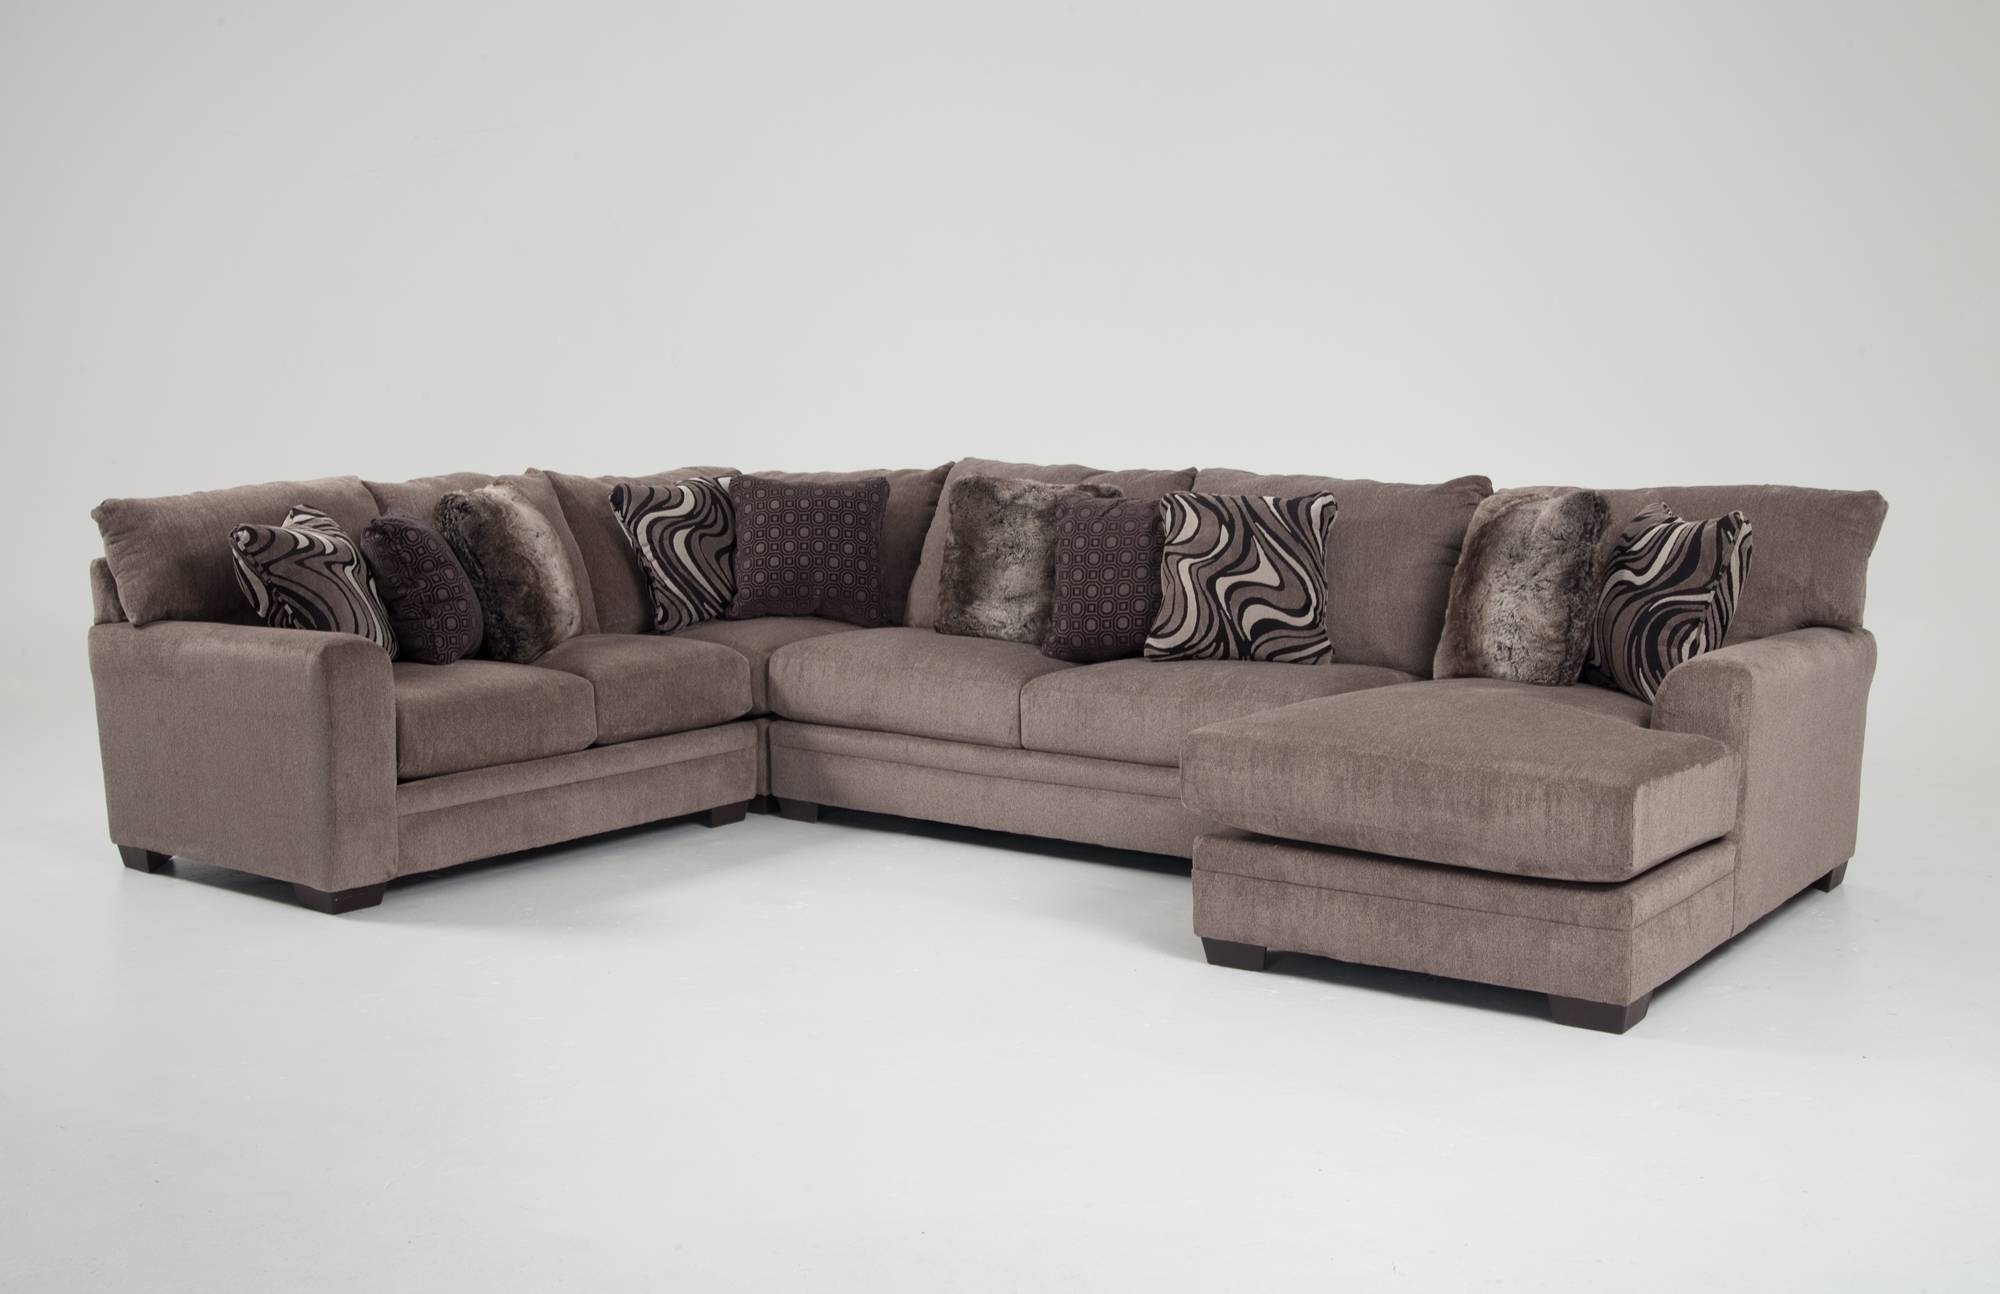 Best And Newest Sectional Sofas Under 700 Regarding Home Designs : Bobs Living Room Sets Ikea Leather Couch Bobs (View 18 of 20)